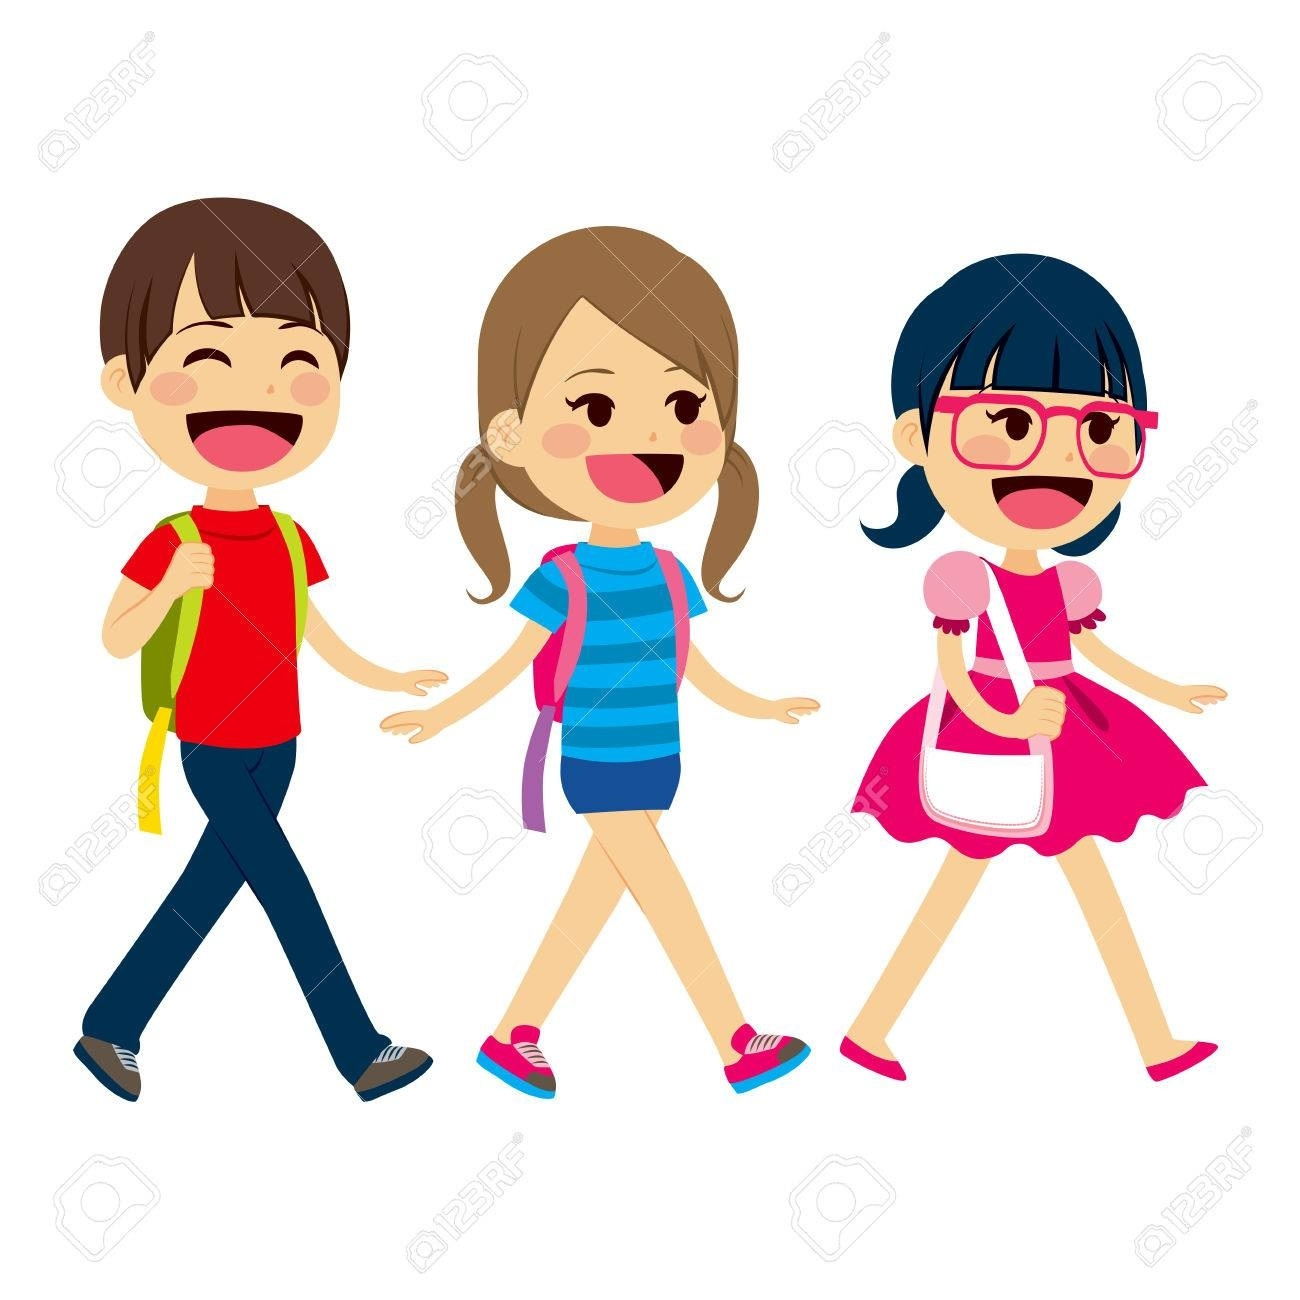 Students walking clipart.